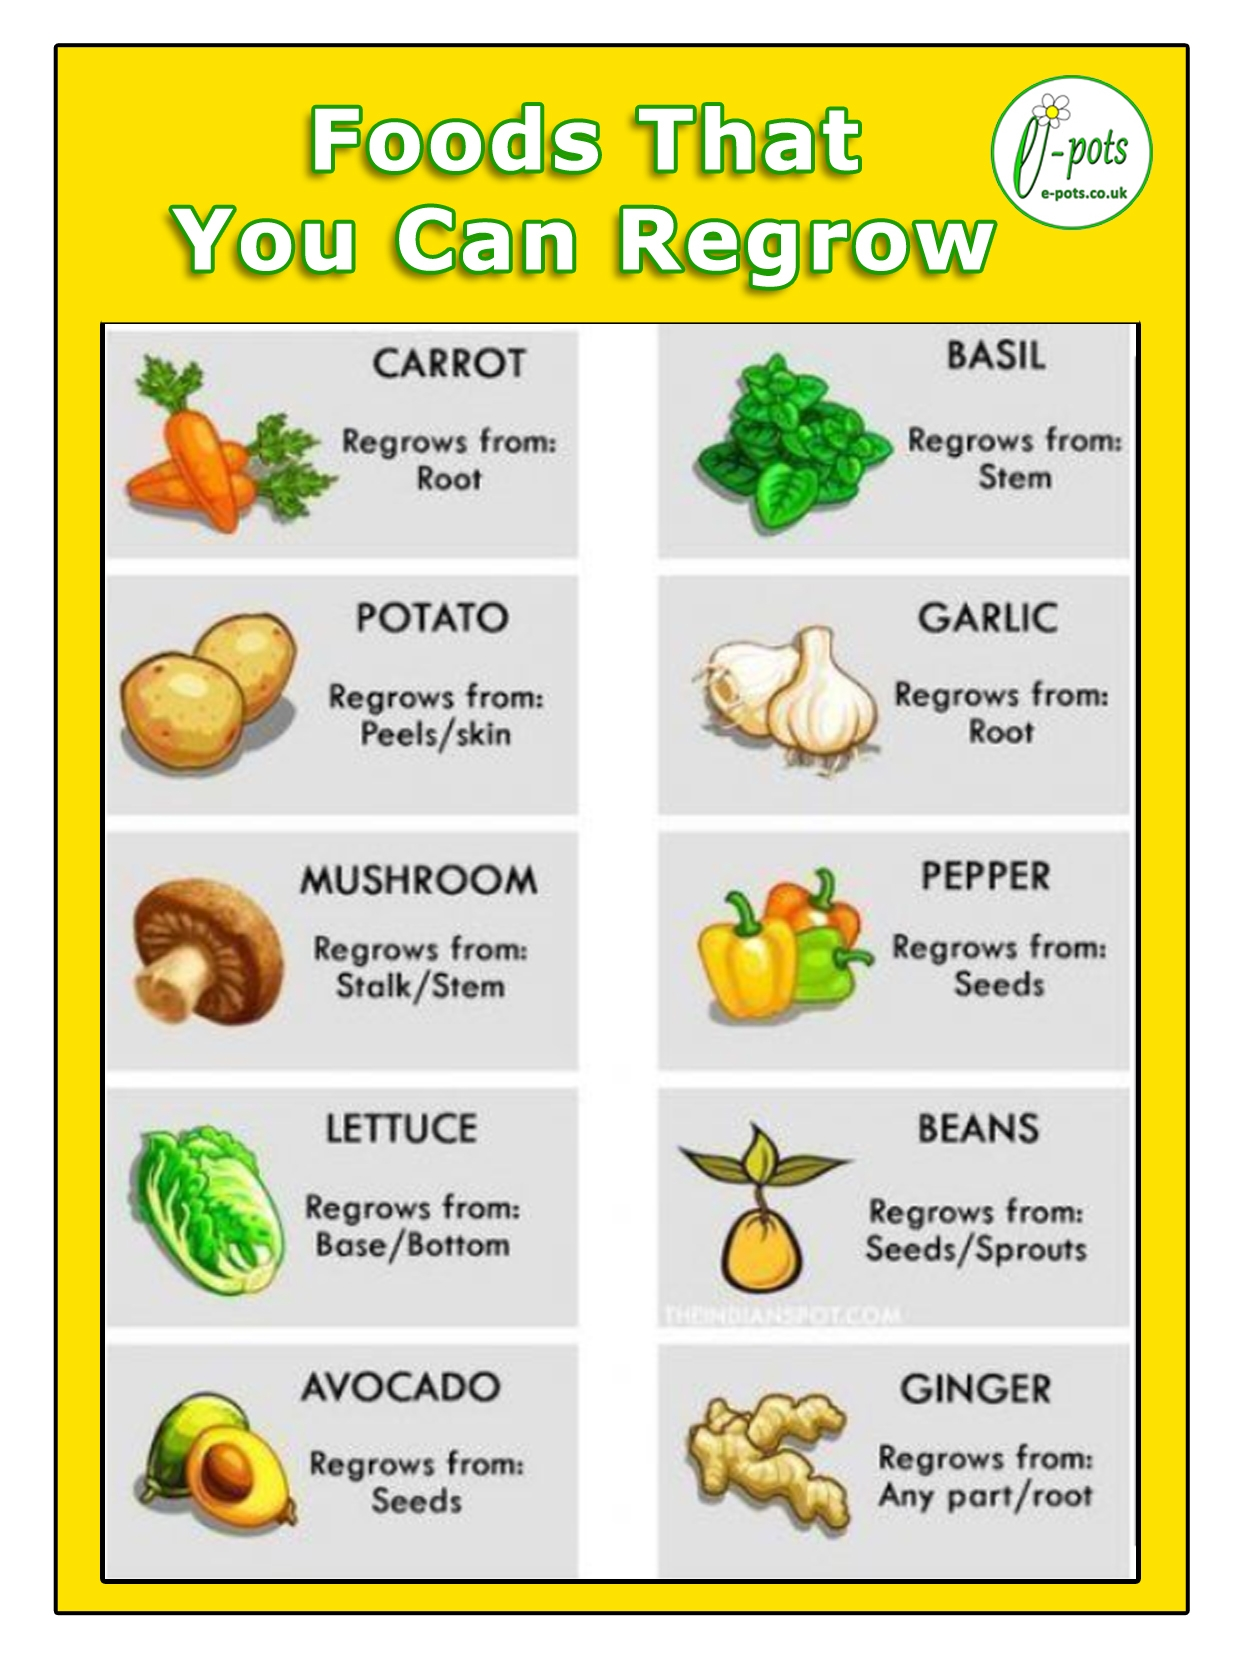 Foods you can regrow